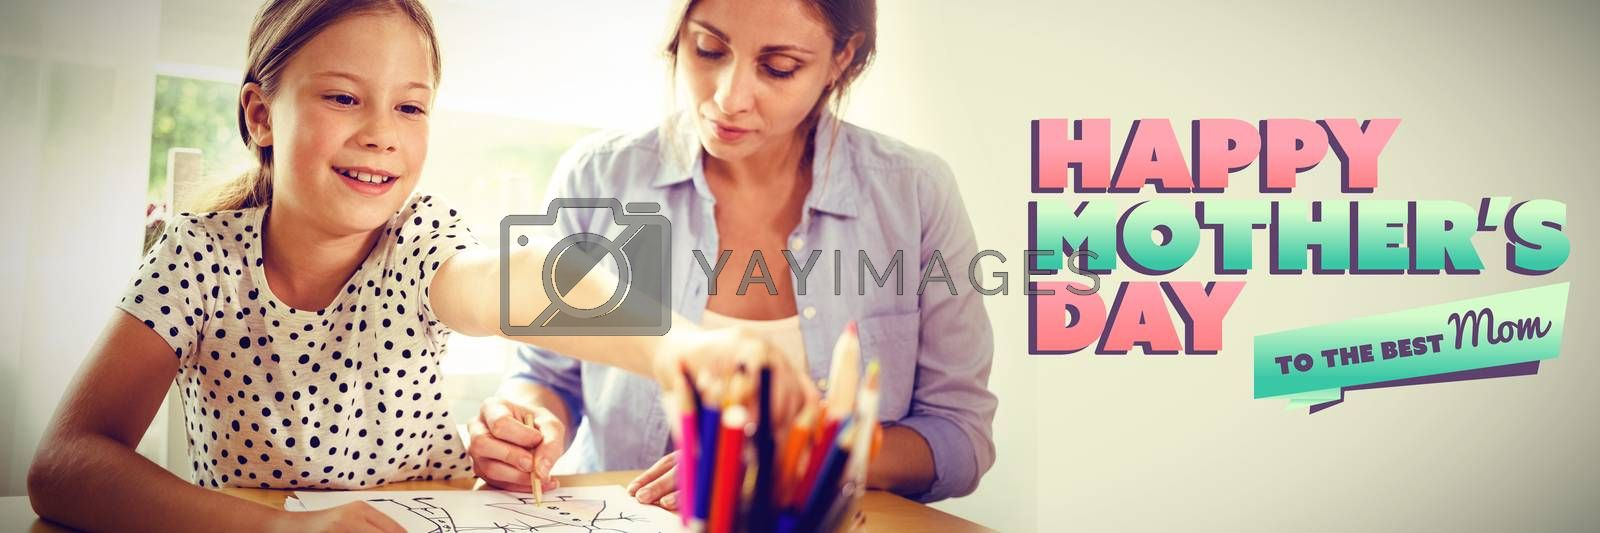 mothers day greeting against smiling mother and daughter drawing together